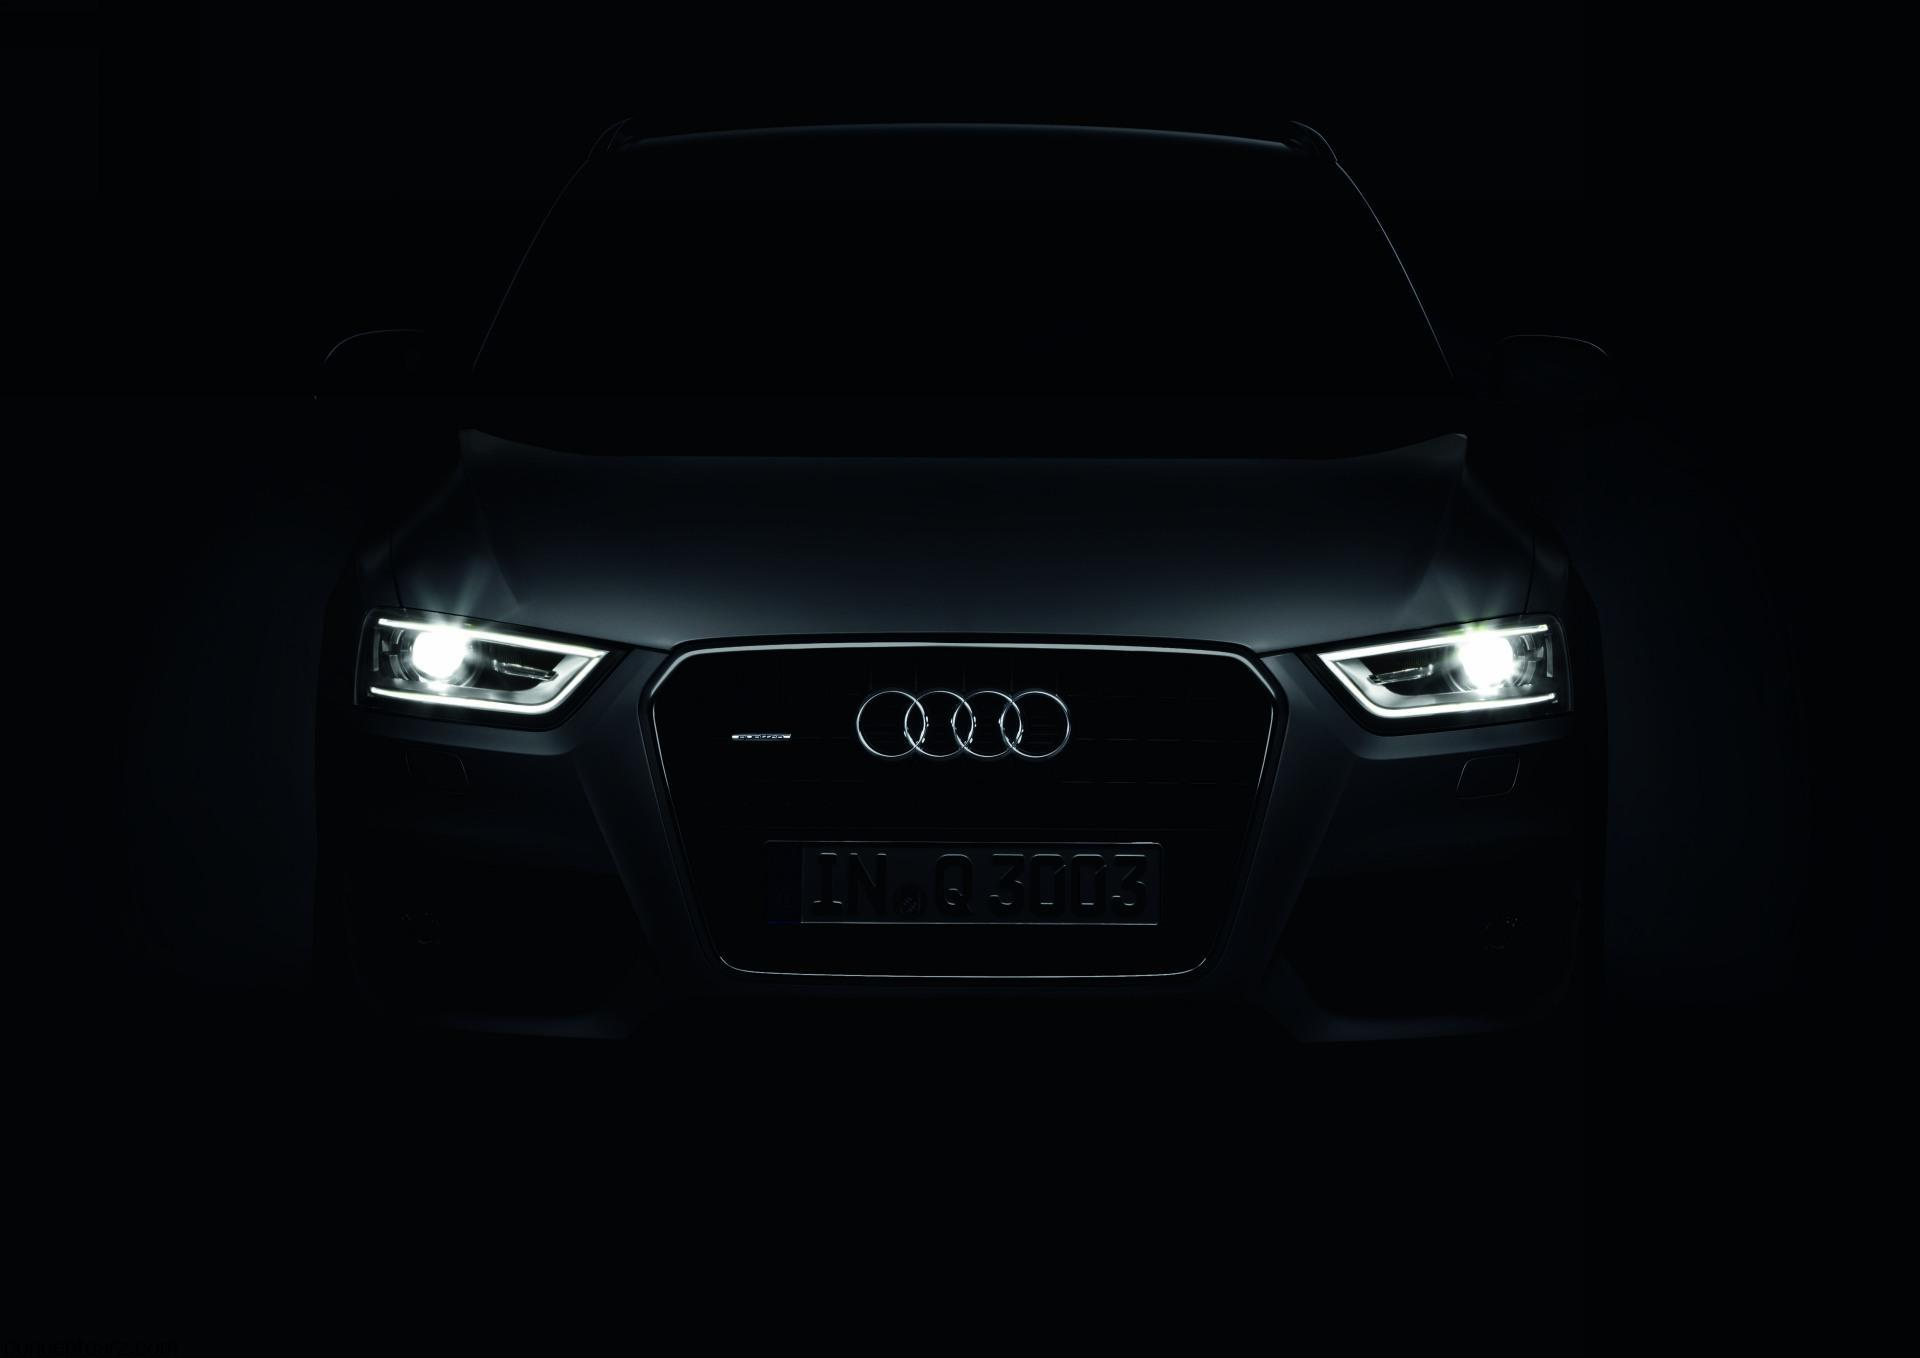 Reliable car Audi q3 wallpapers and image